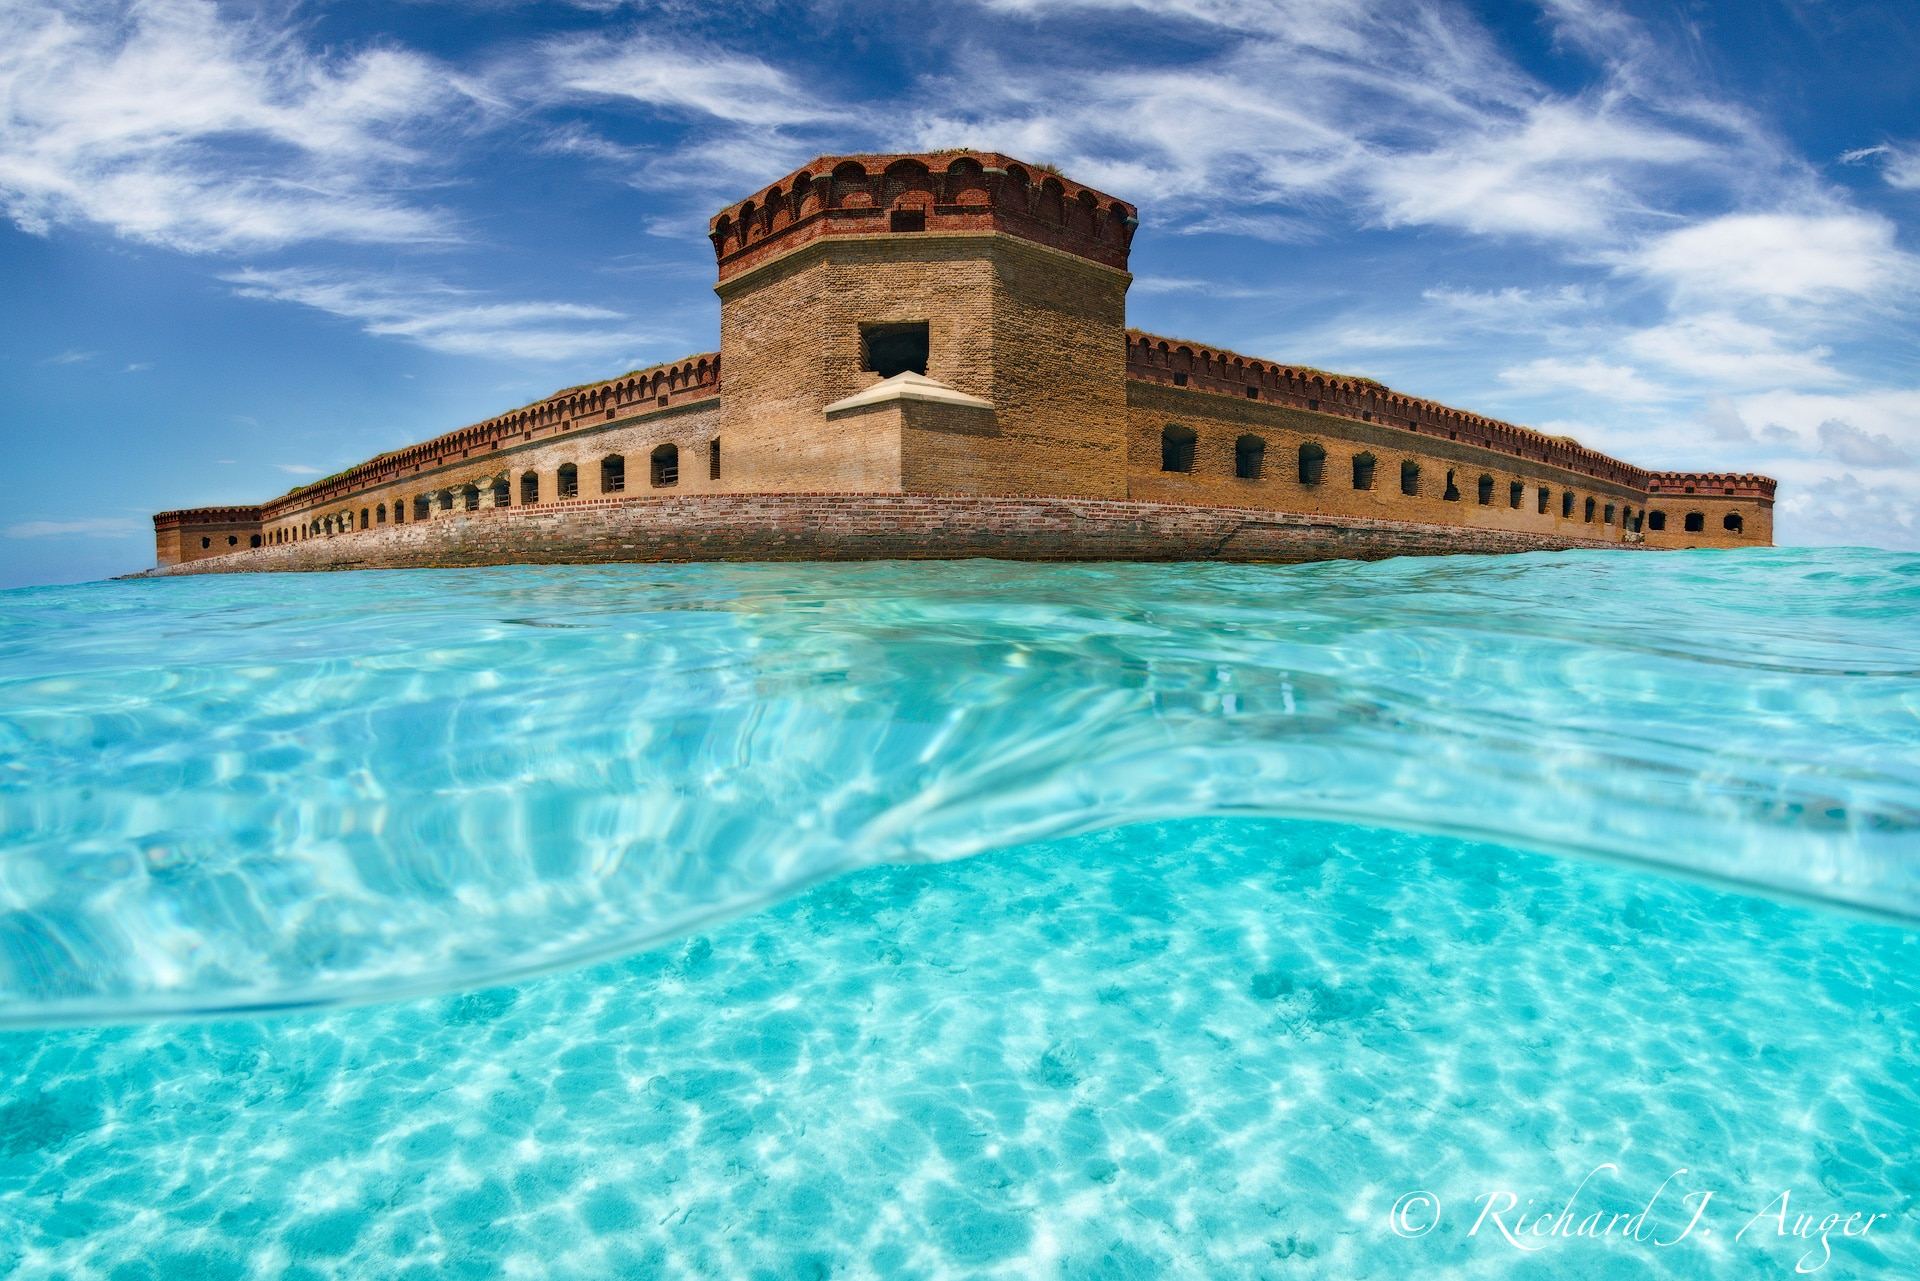 Dry Tortugas National Park, Fort Jefferson, Florida, Underwater, Fort, Key West, Ocean, Photograph, Landscape, Photo, Photographer